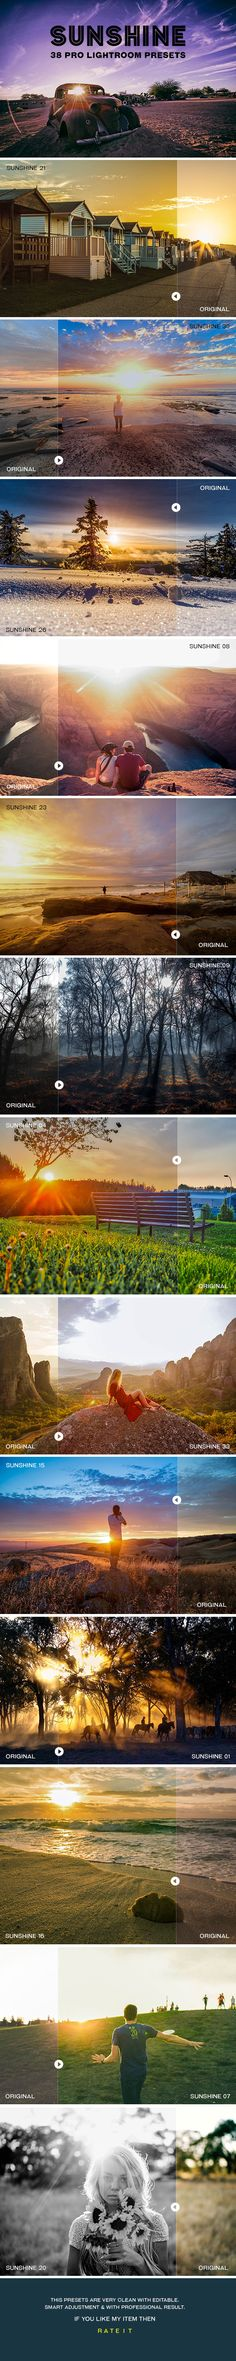 Sunshine Lightroom Presets - #Lightroom #Presets #Add-ons Download here: https://graphicriver.net/item/sunshine-lightroom-presets/20320553?ref=alena994